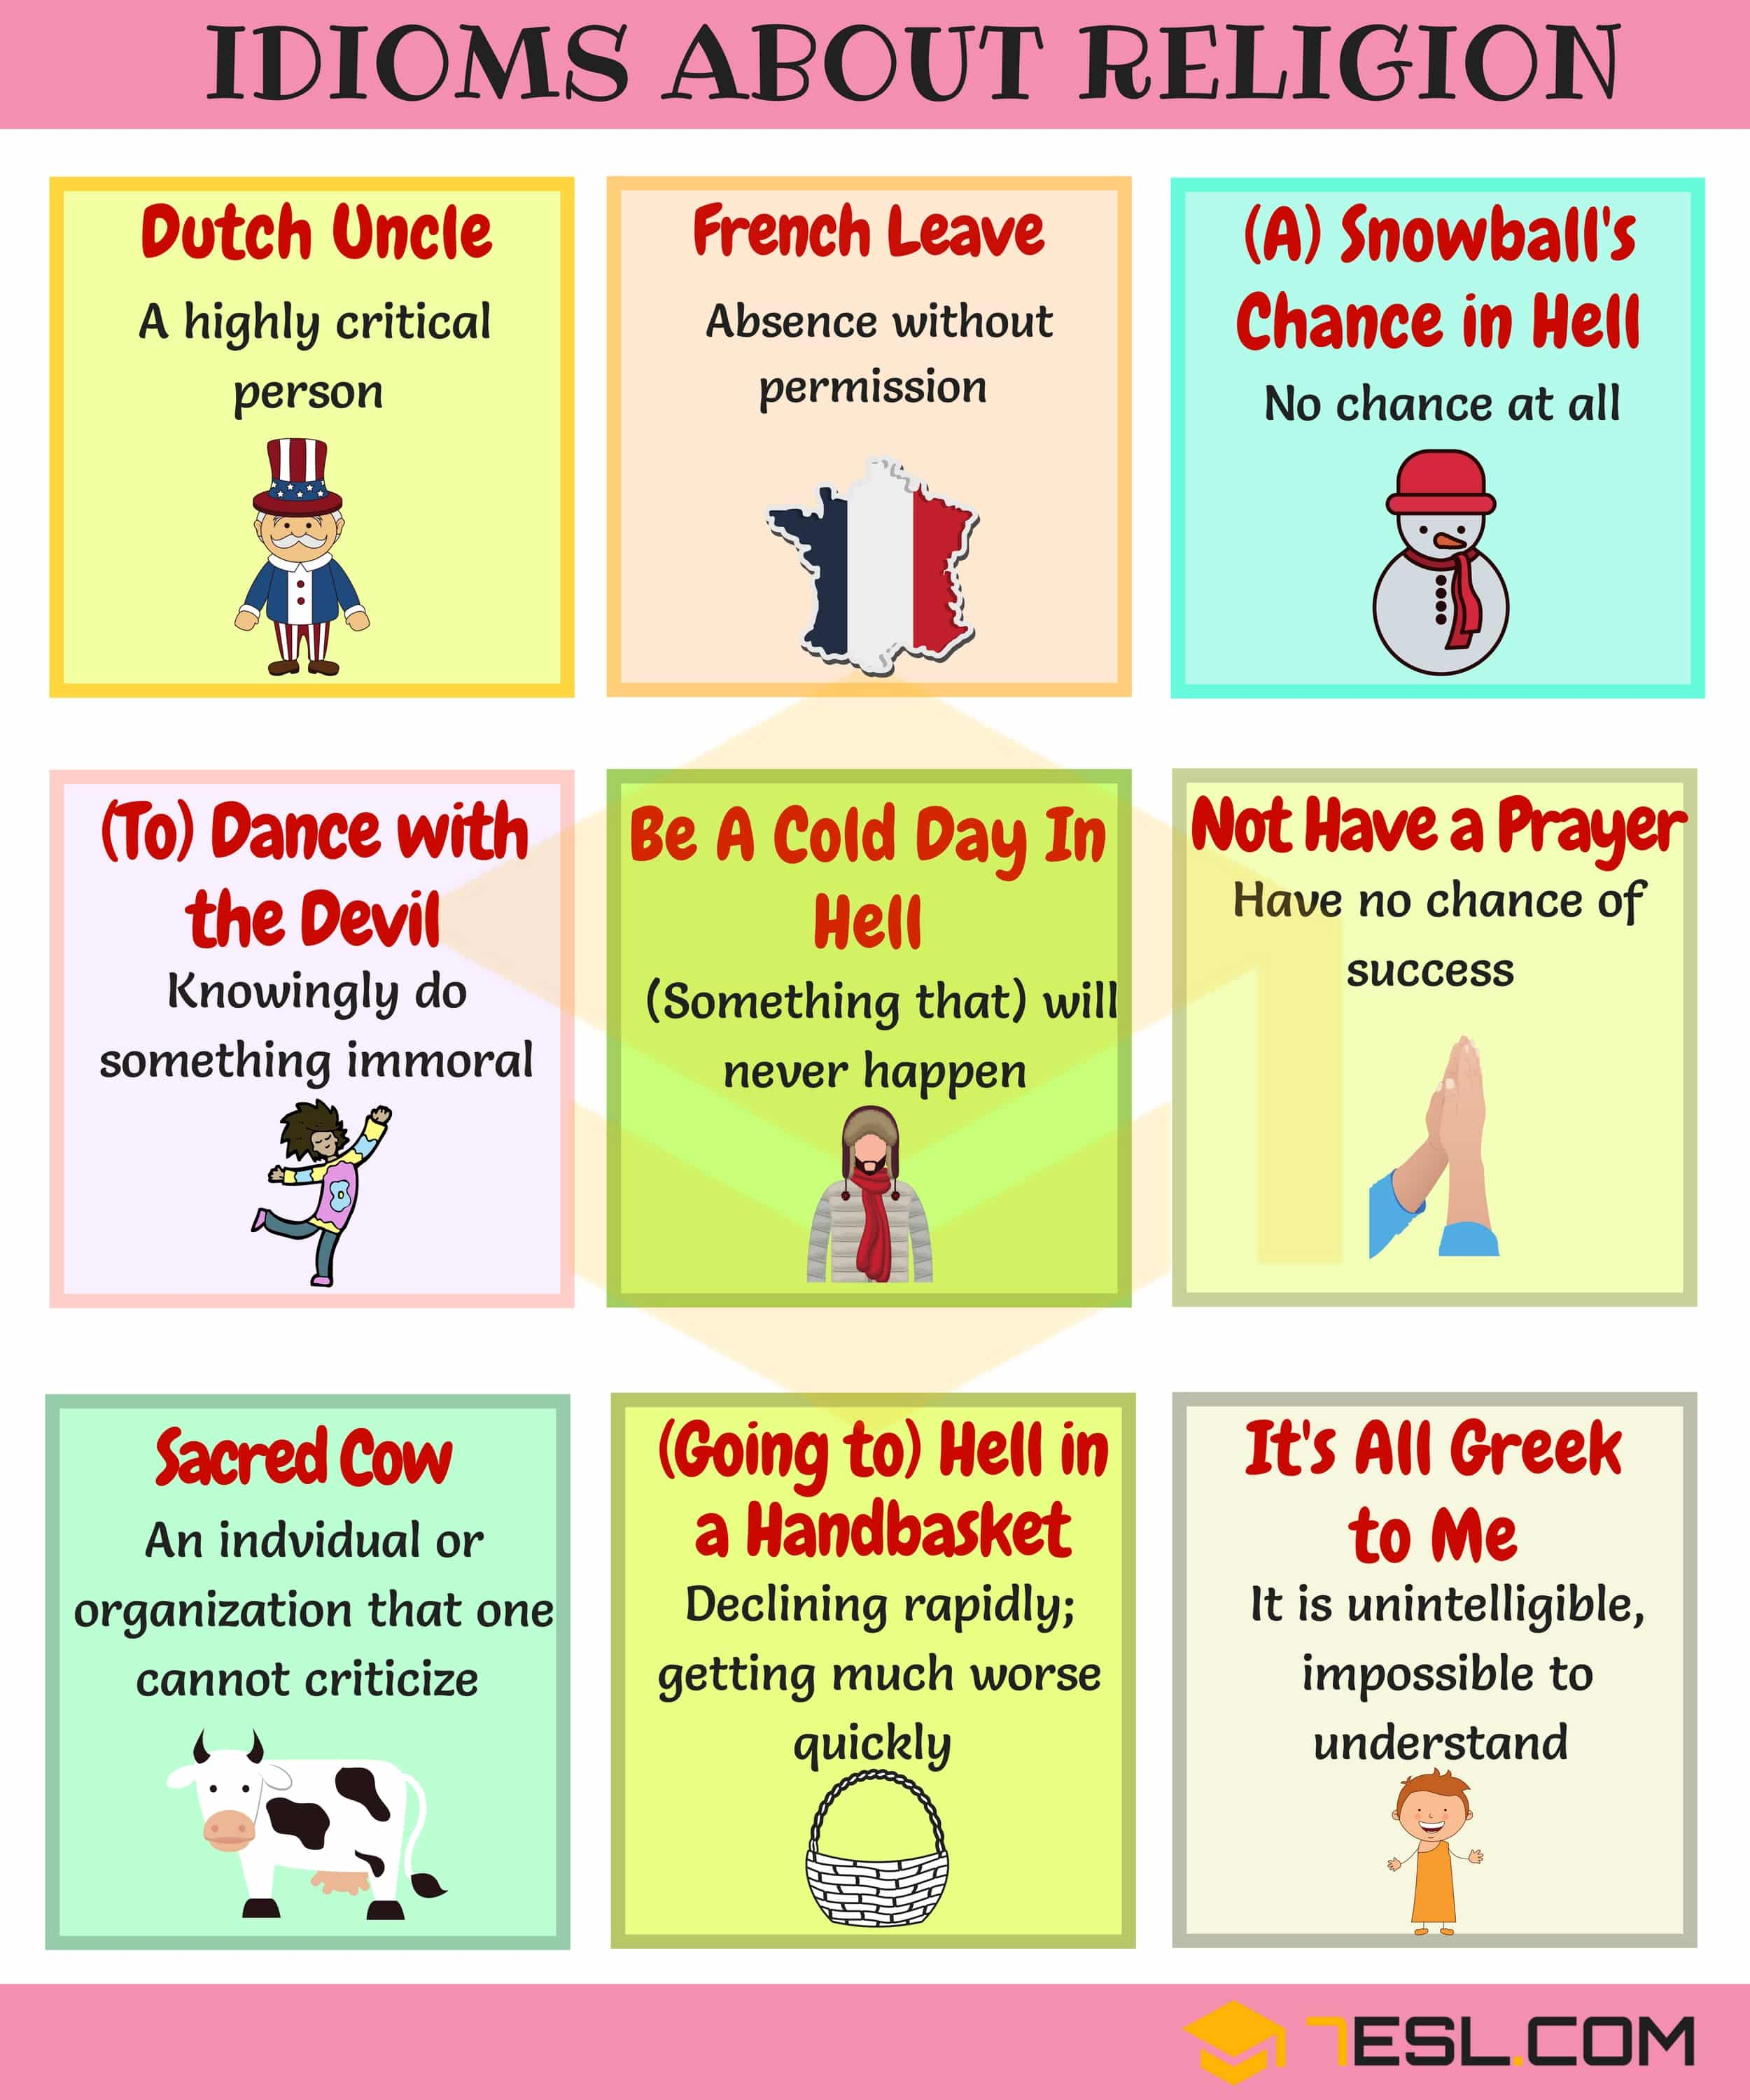 2000+ Common English Idioms and Their Meanings 10